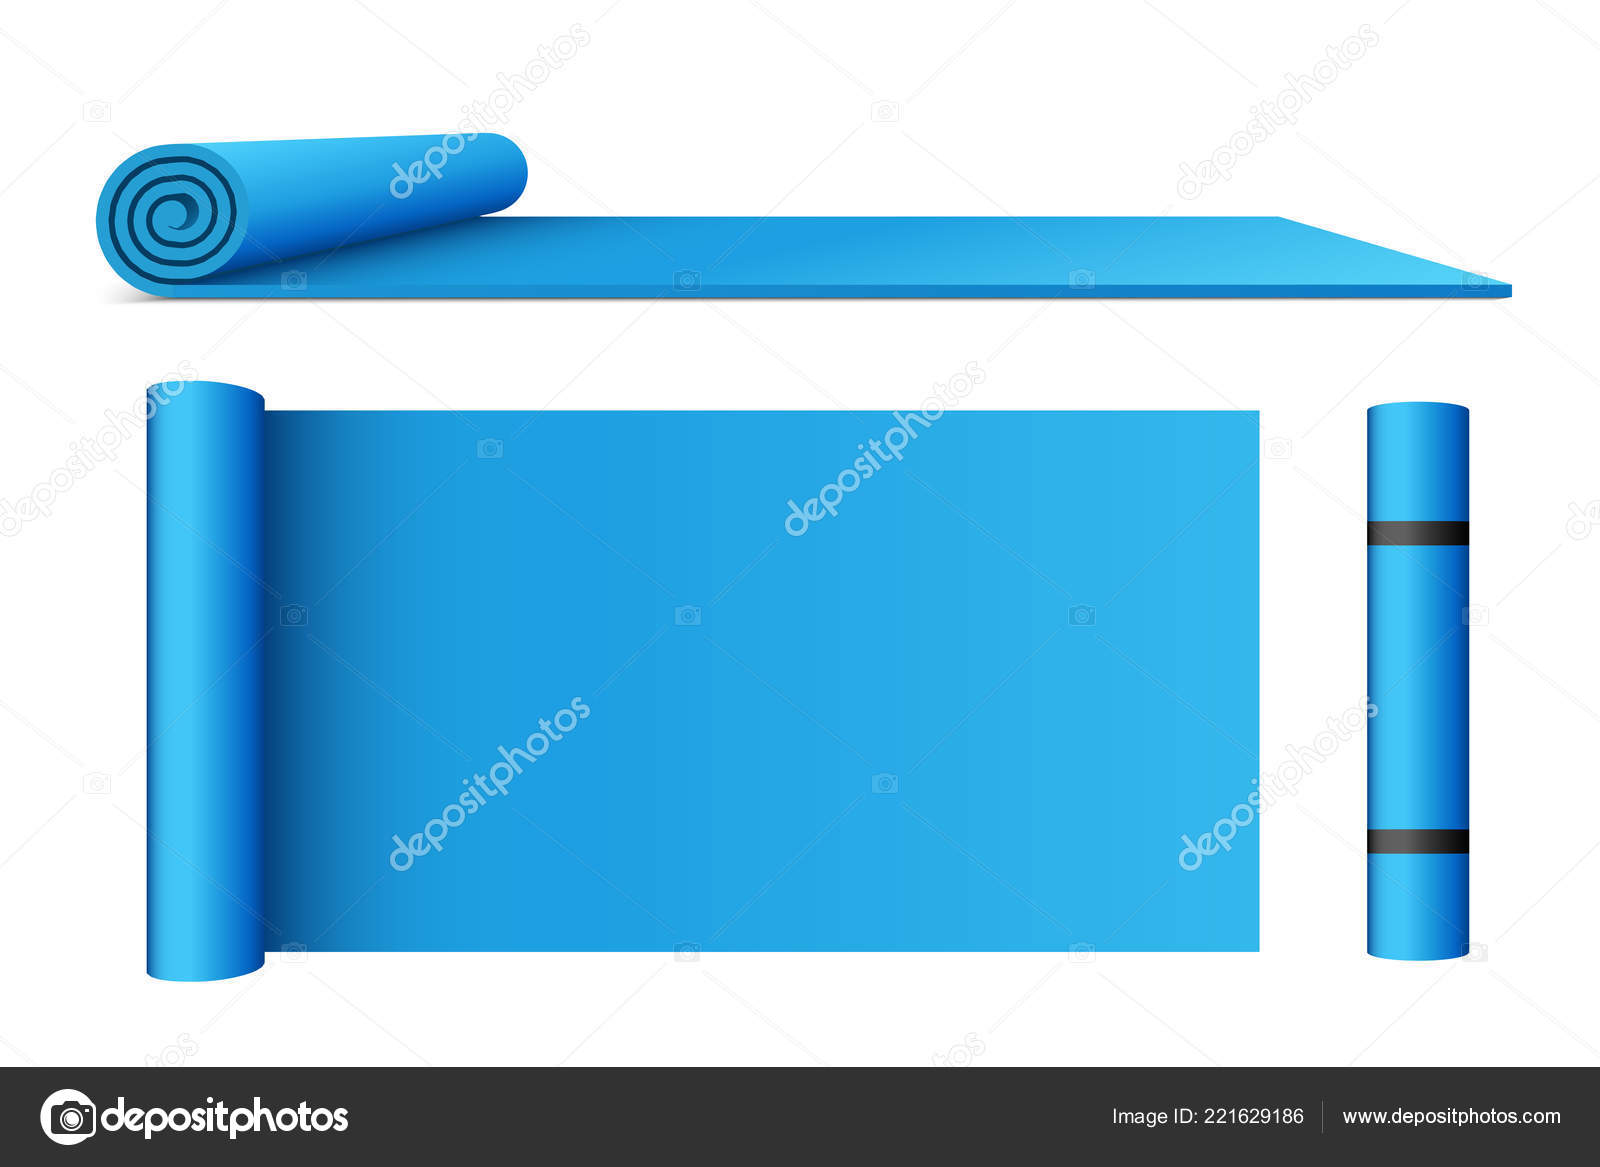 Creative Vector Illustration Of Half Rolled Yoga Mat Isolated On Transparent Background Art Design Fitness And Health Template Abstract Concept Graphic Pilates Exercise Equipment Element Stock Vector C Mikhail Grachikov 221629186